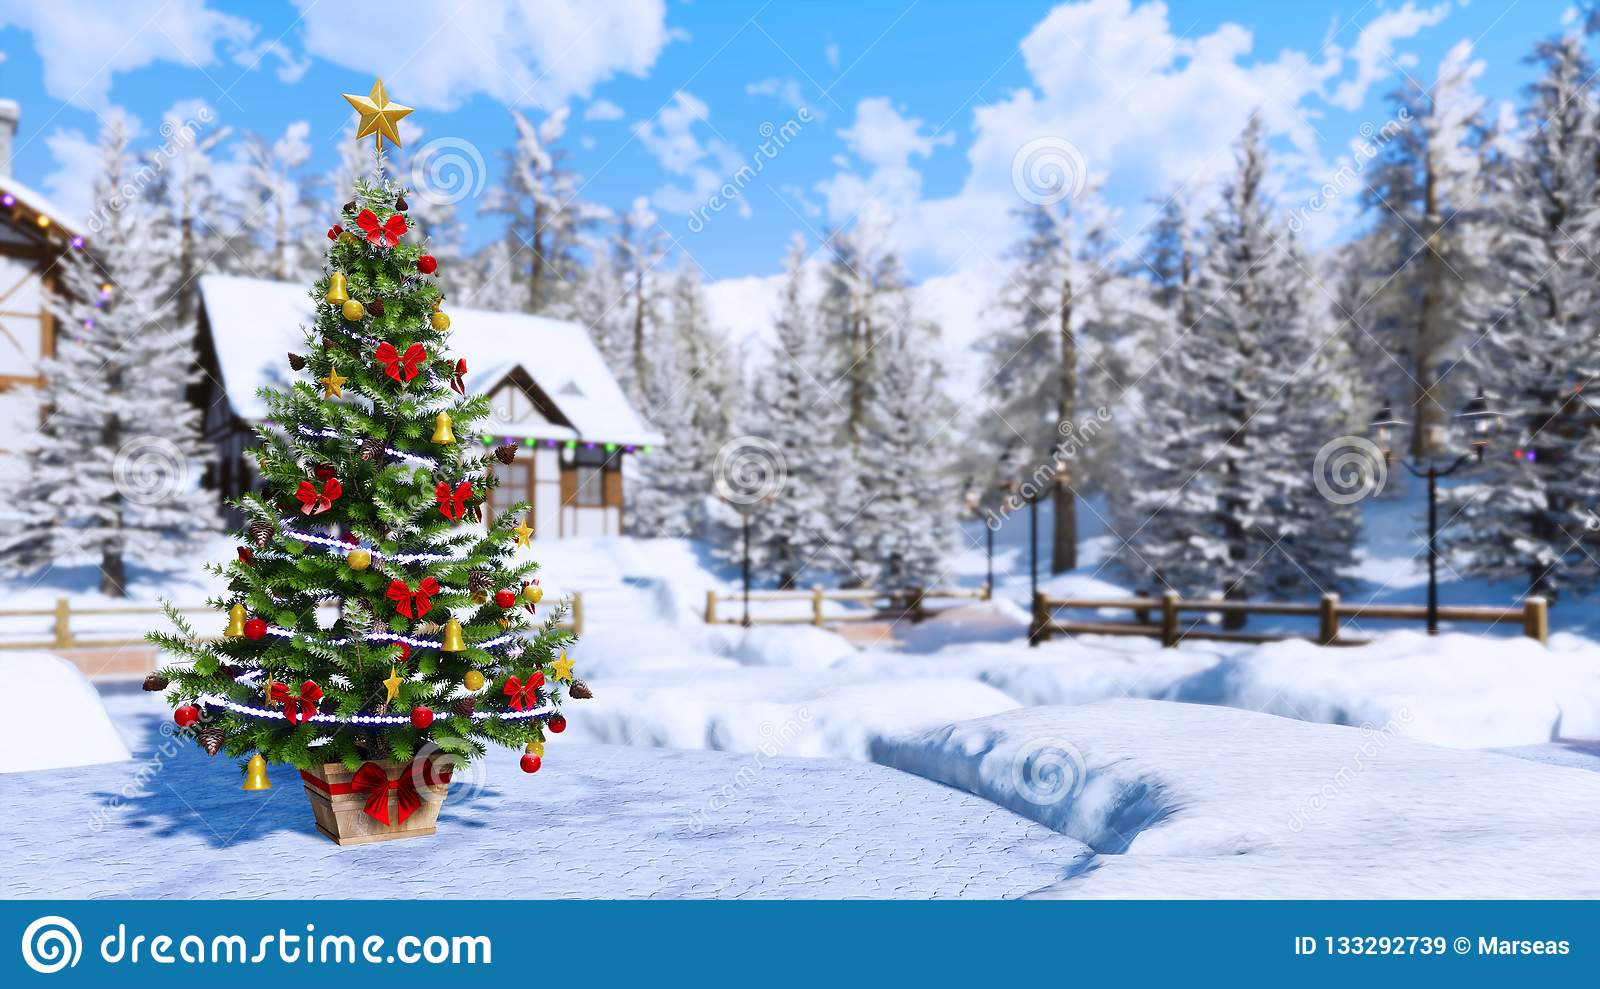 Outdoor Christmas Tree Blurred Winter Background Stock